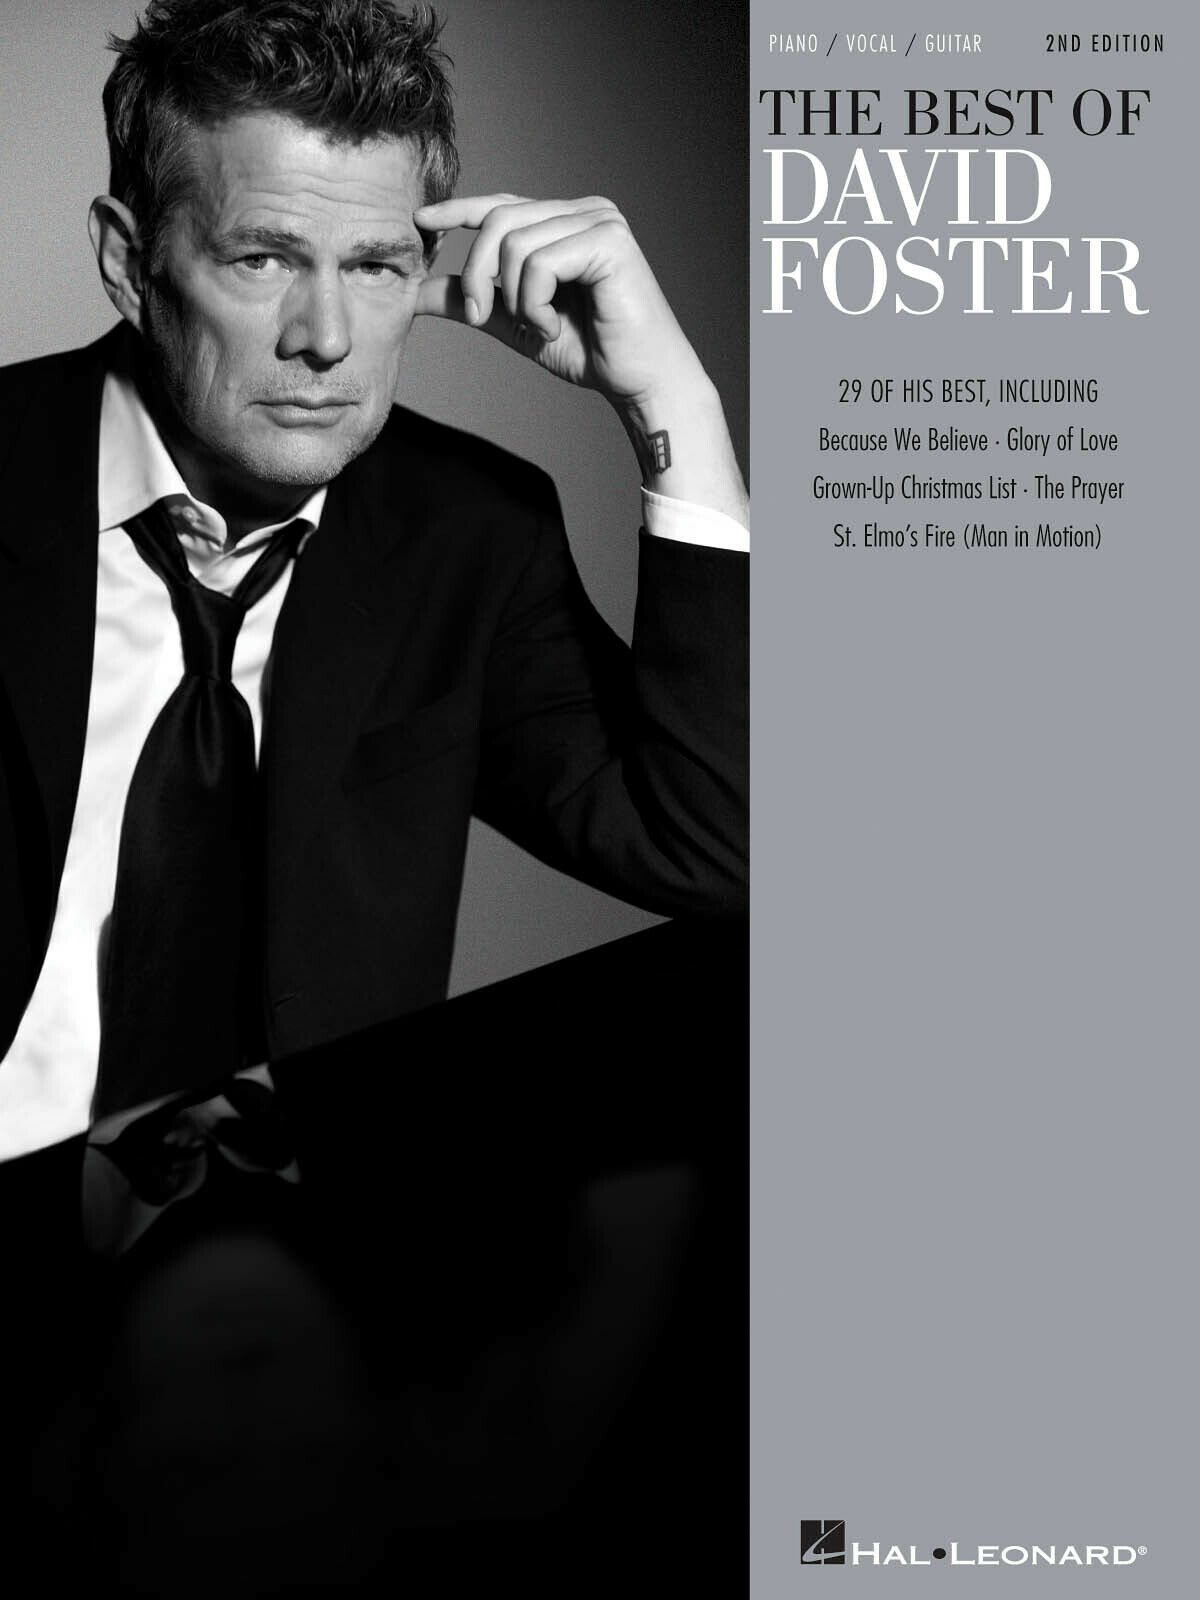 Best Of David Foster Piano Sheet Music Guitar Chords 29 Pop Songs Book For Sale Online